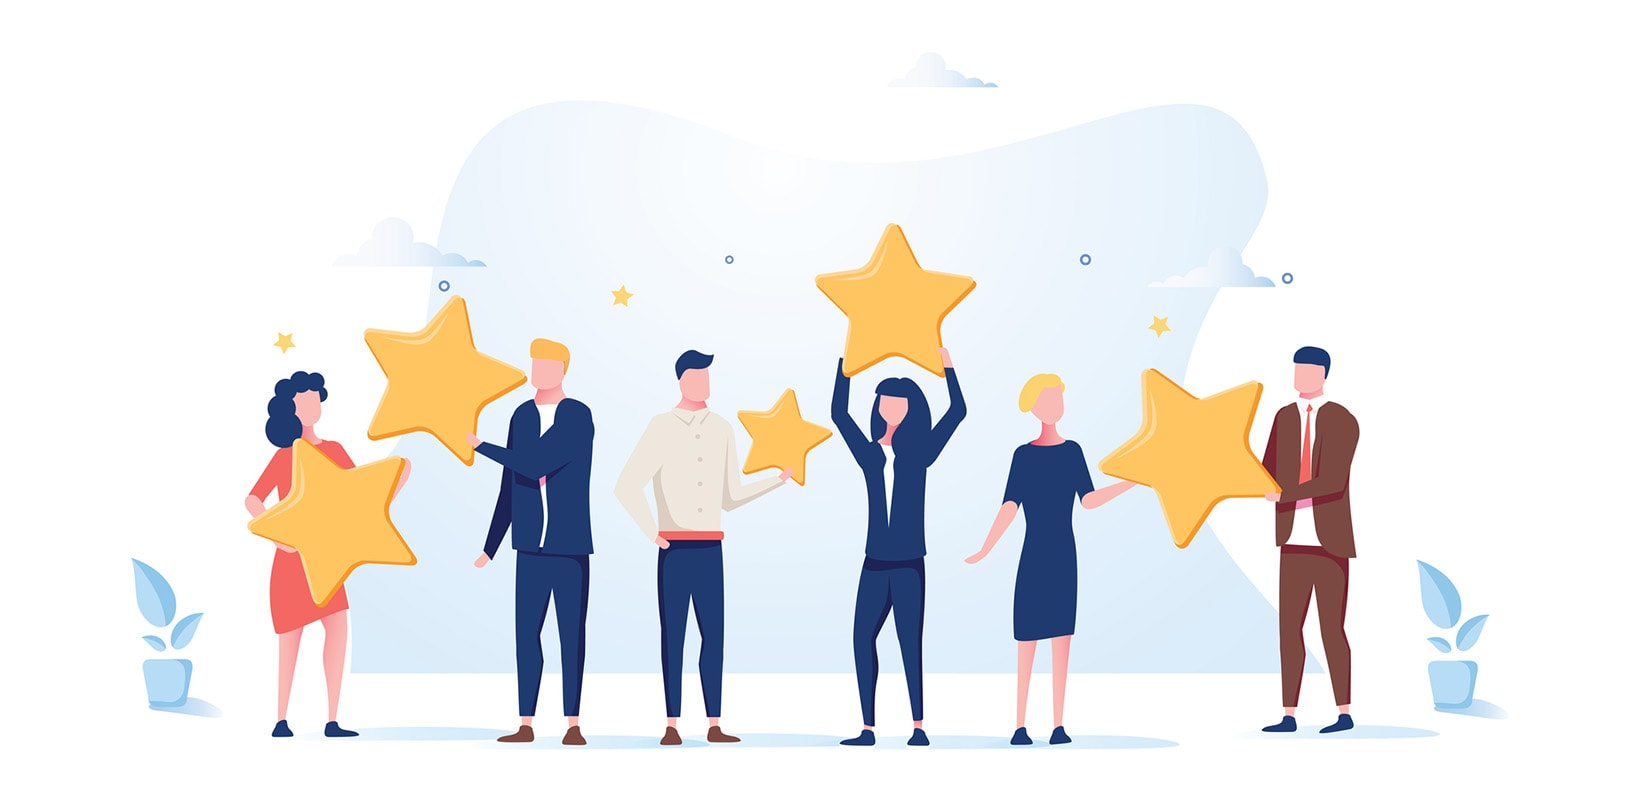 An illustration of people receiving awards